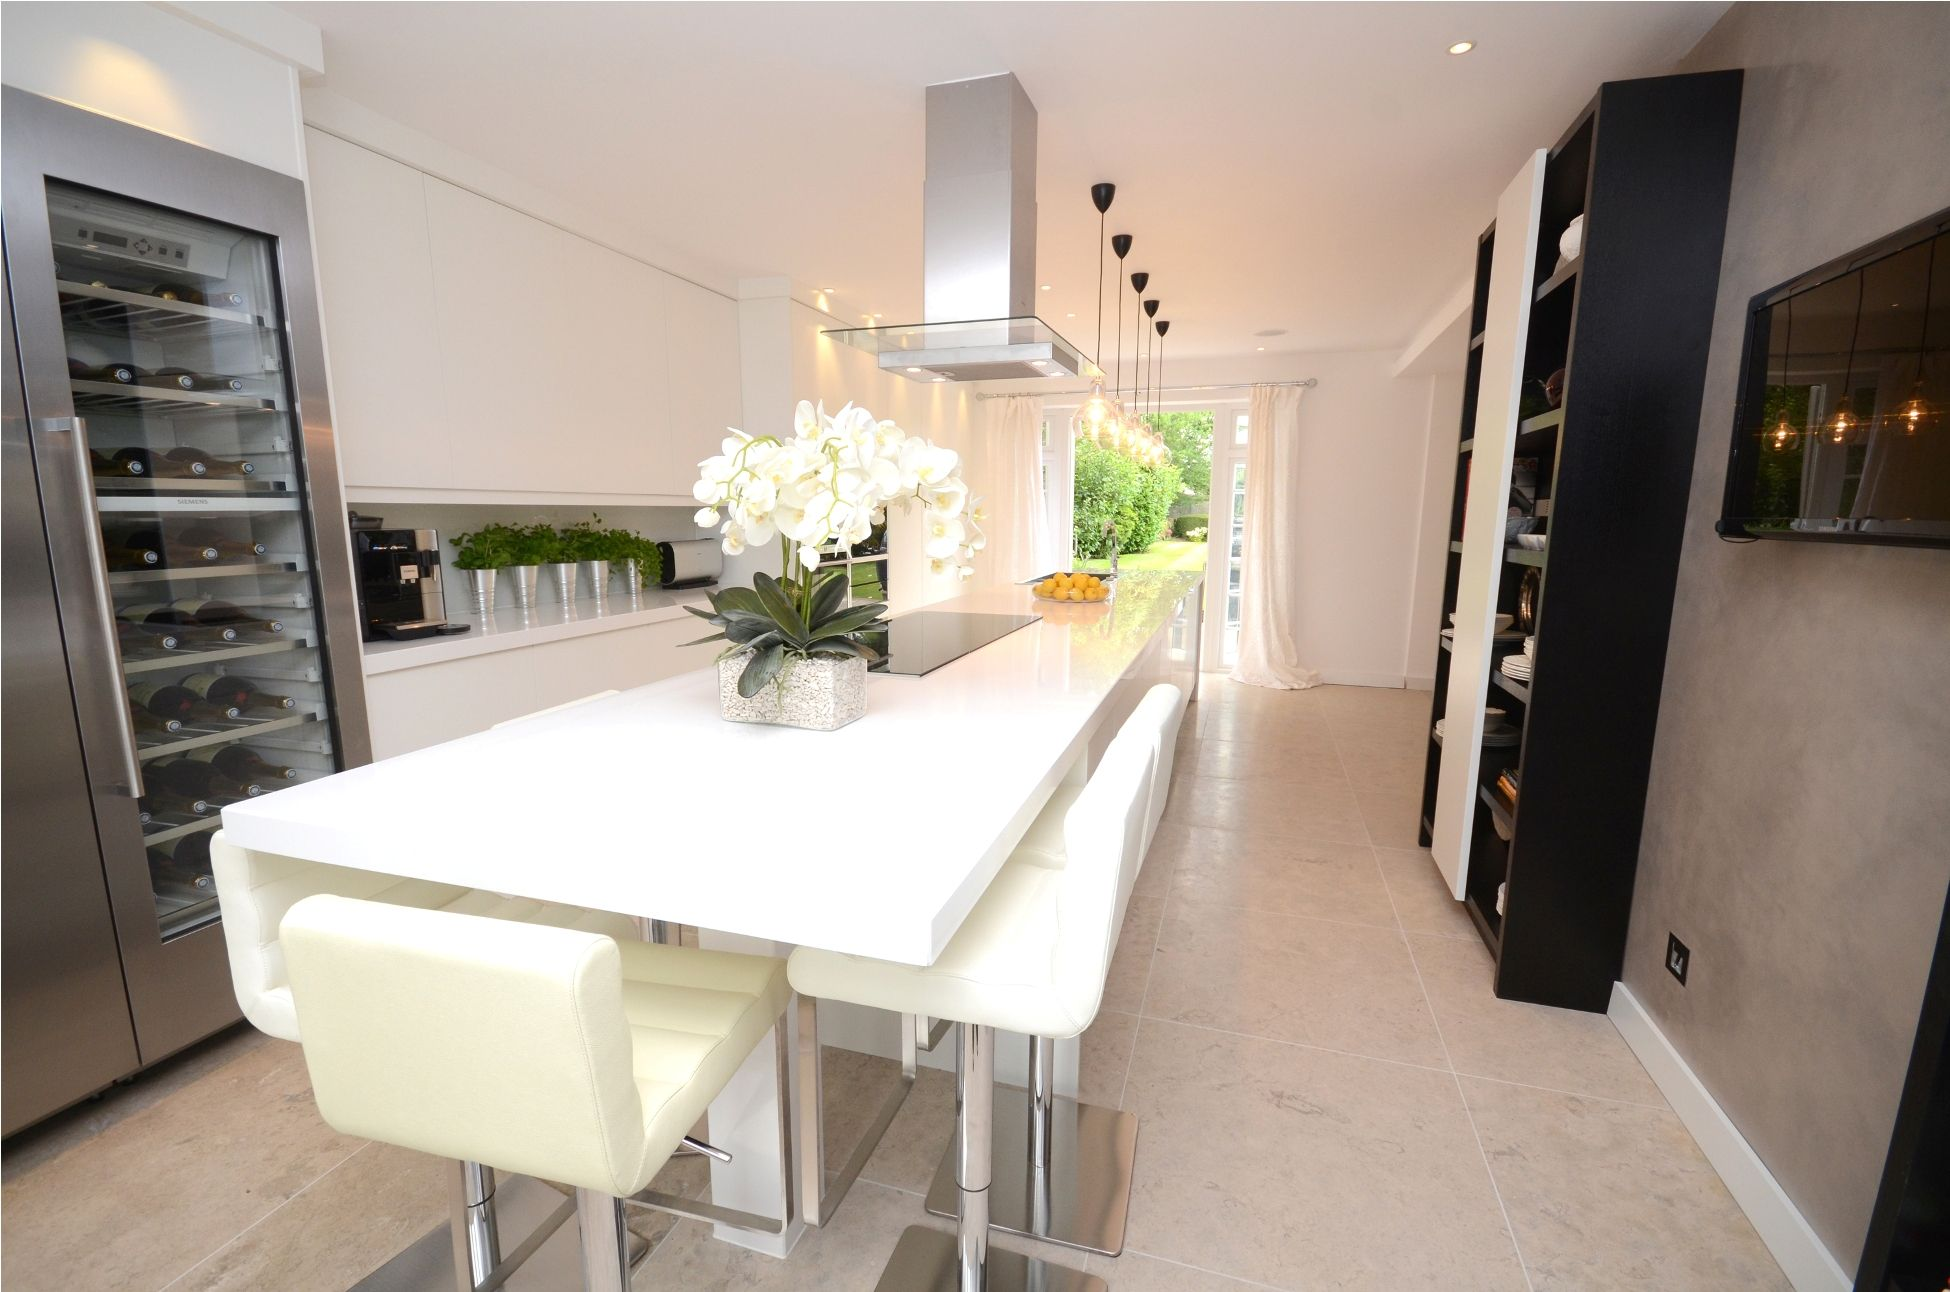 Explore Modern White Kitchens And More! Kelly Hoppen ... Part 5